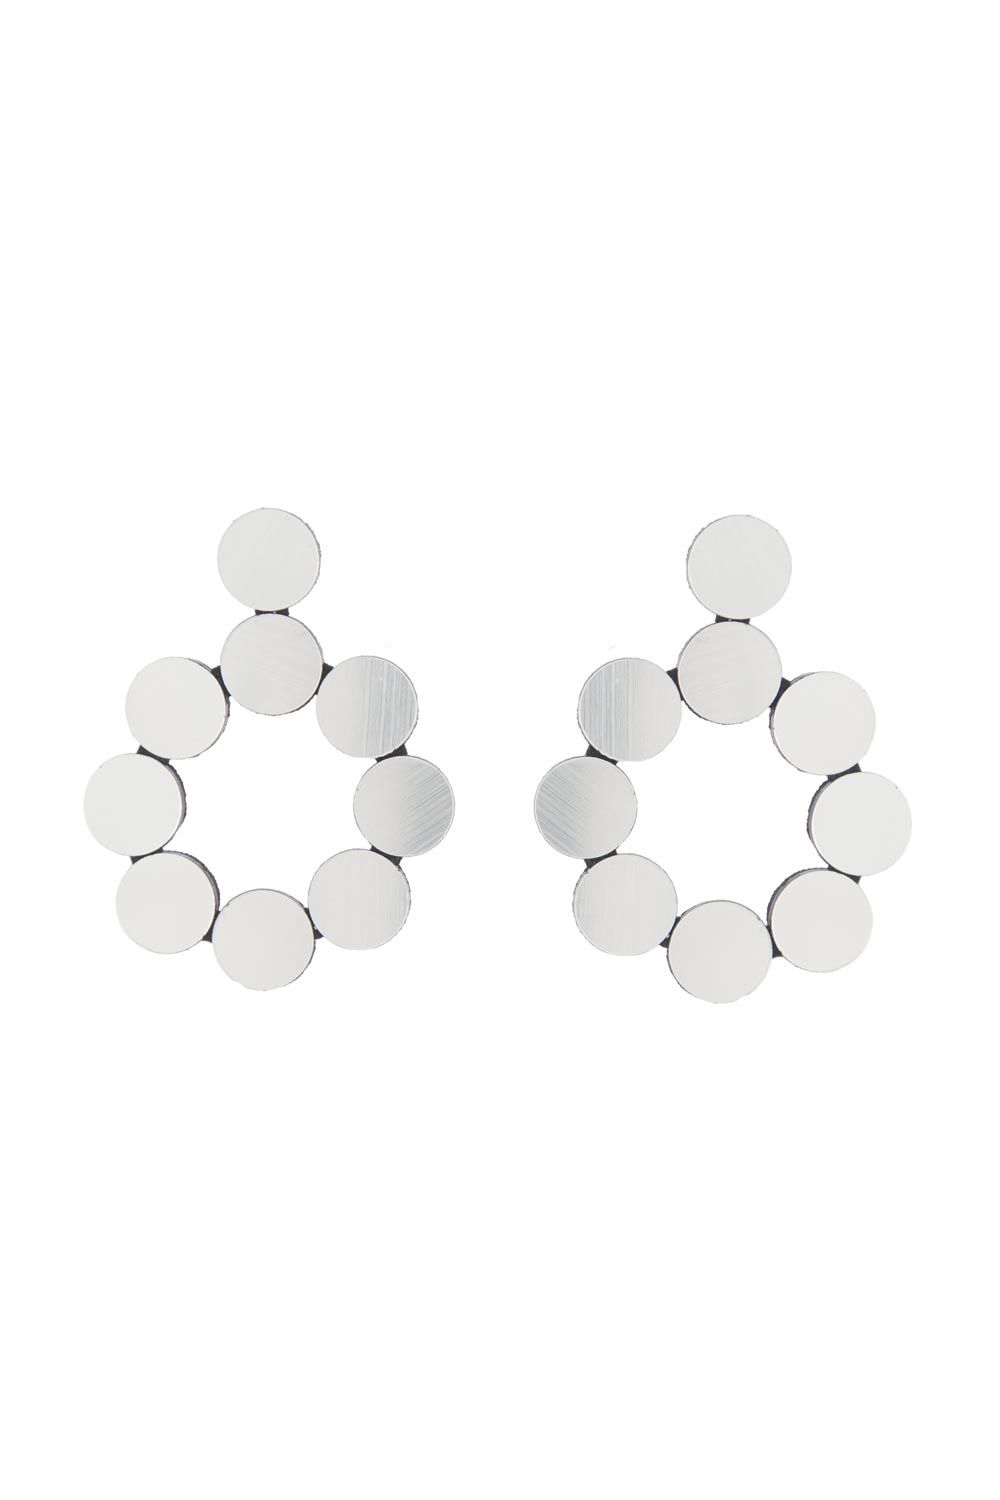 Abstraction Earrings - Drop Hoops